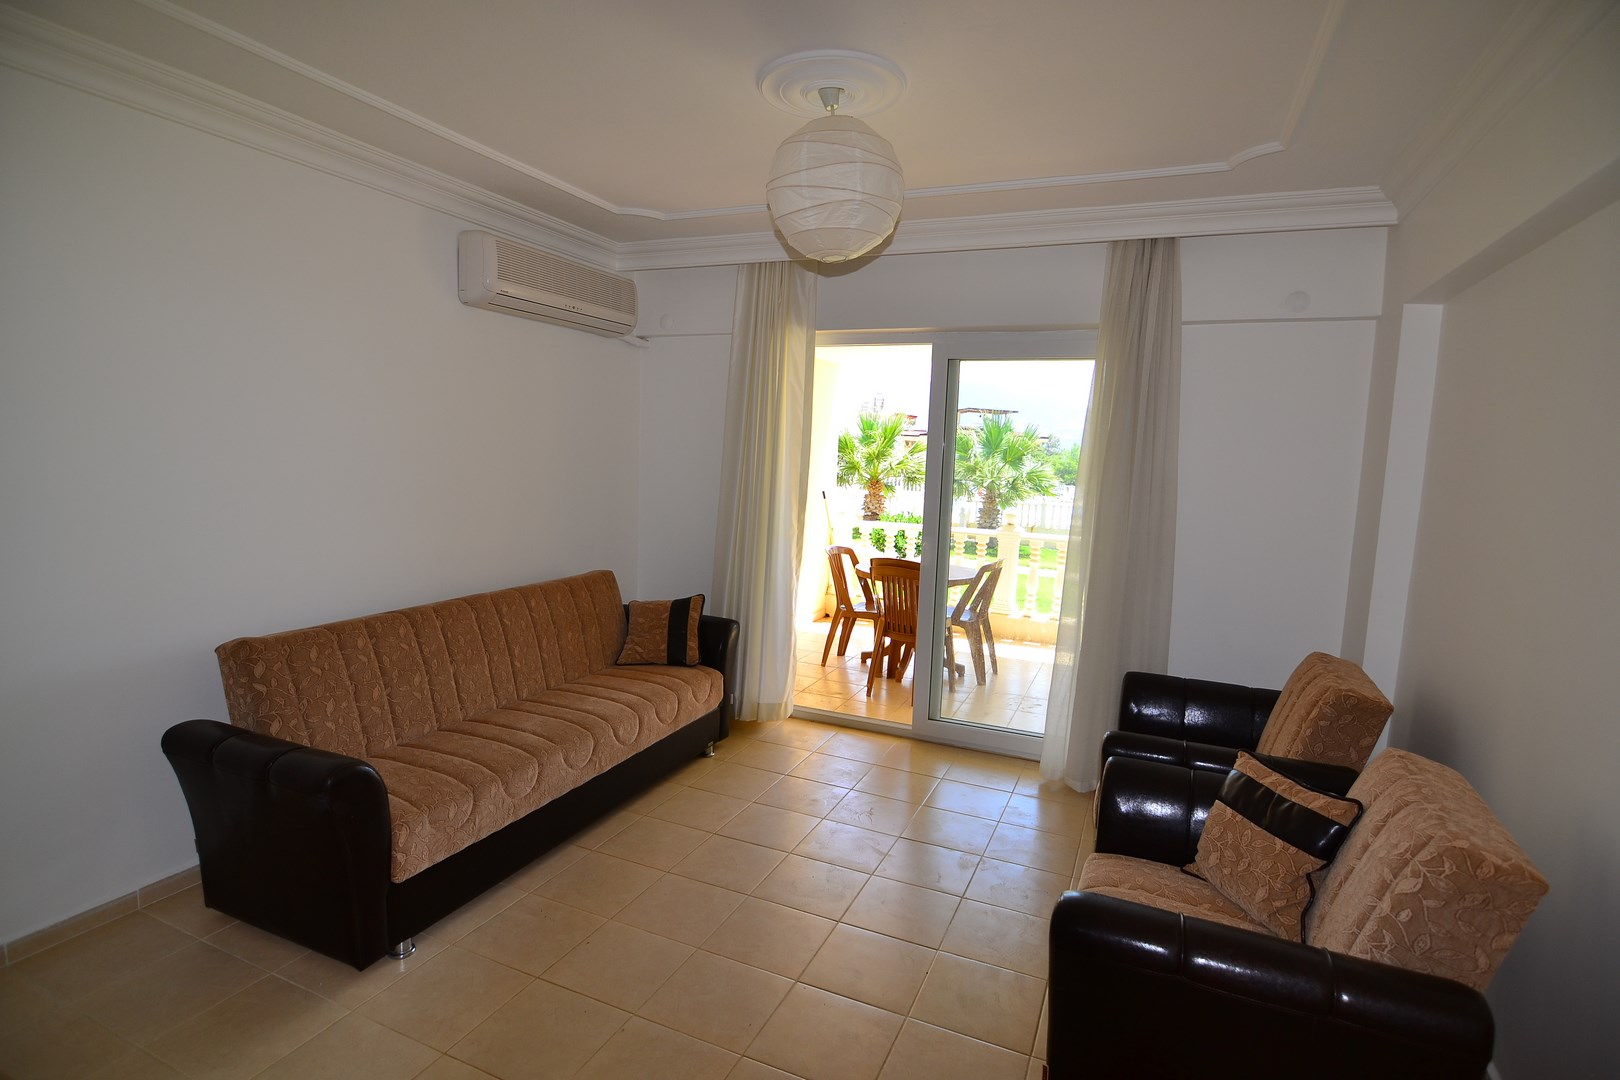 2 bedroom apartment for sale in Akbuk